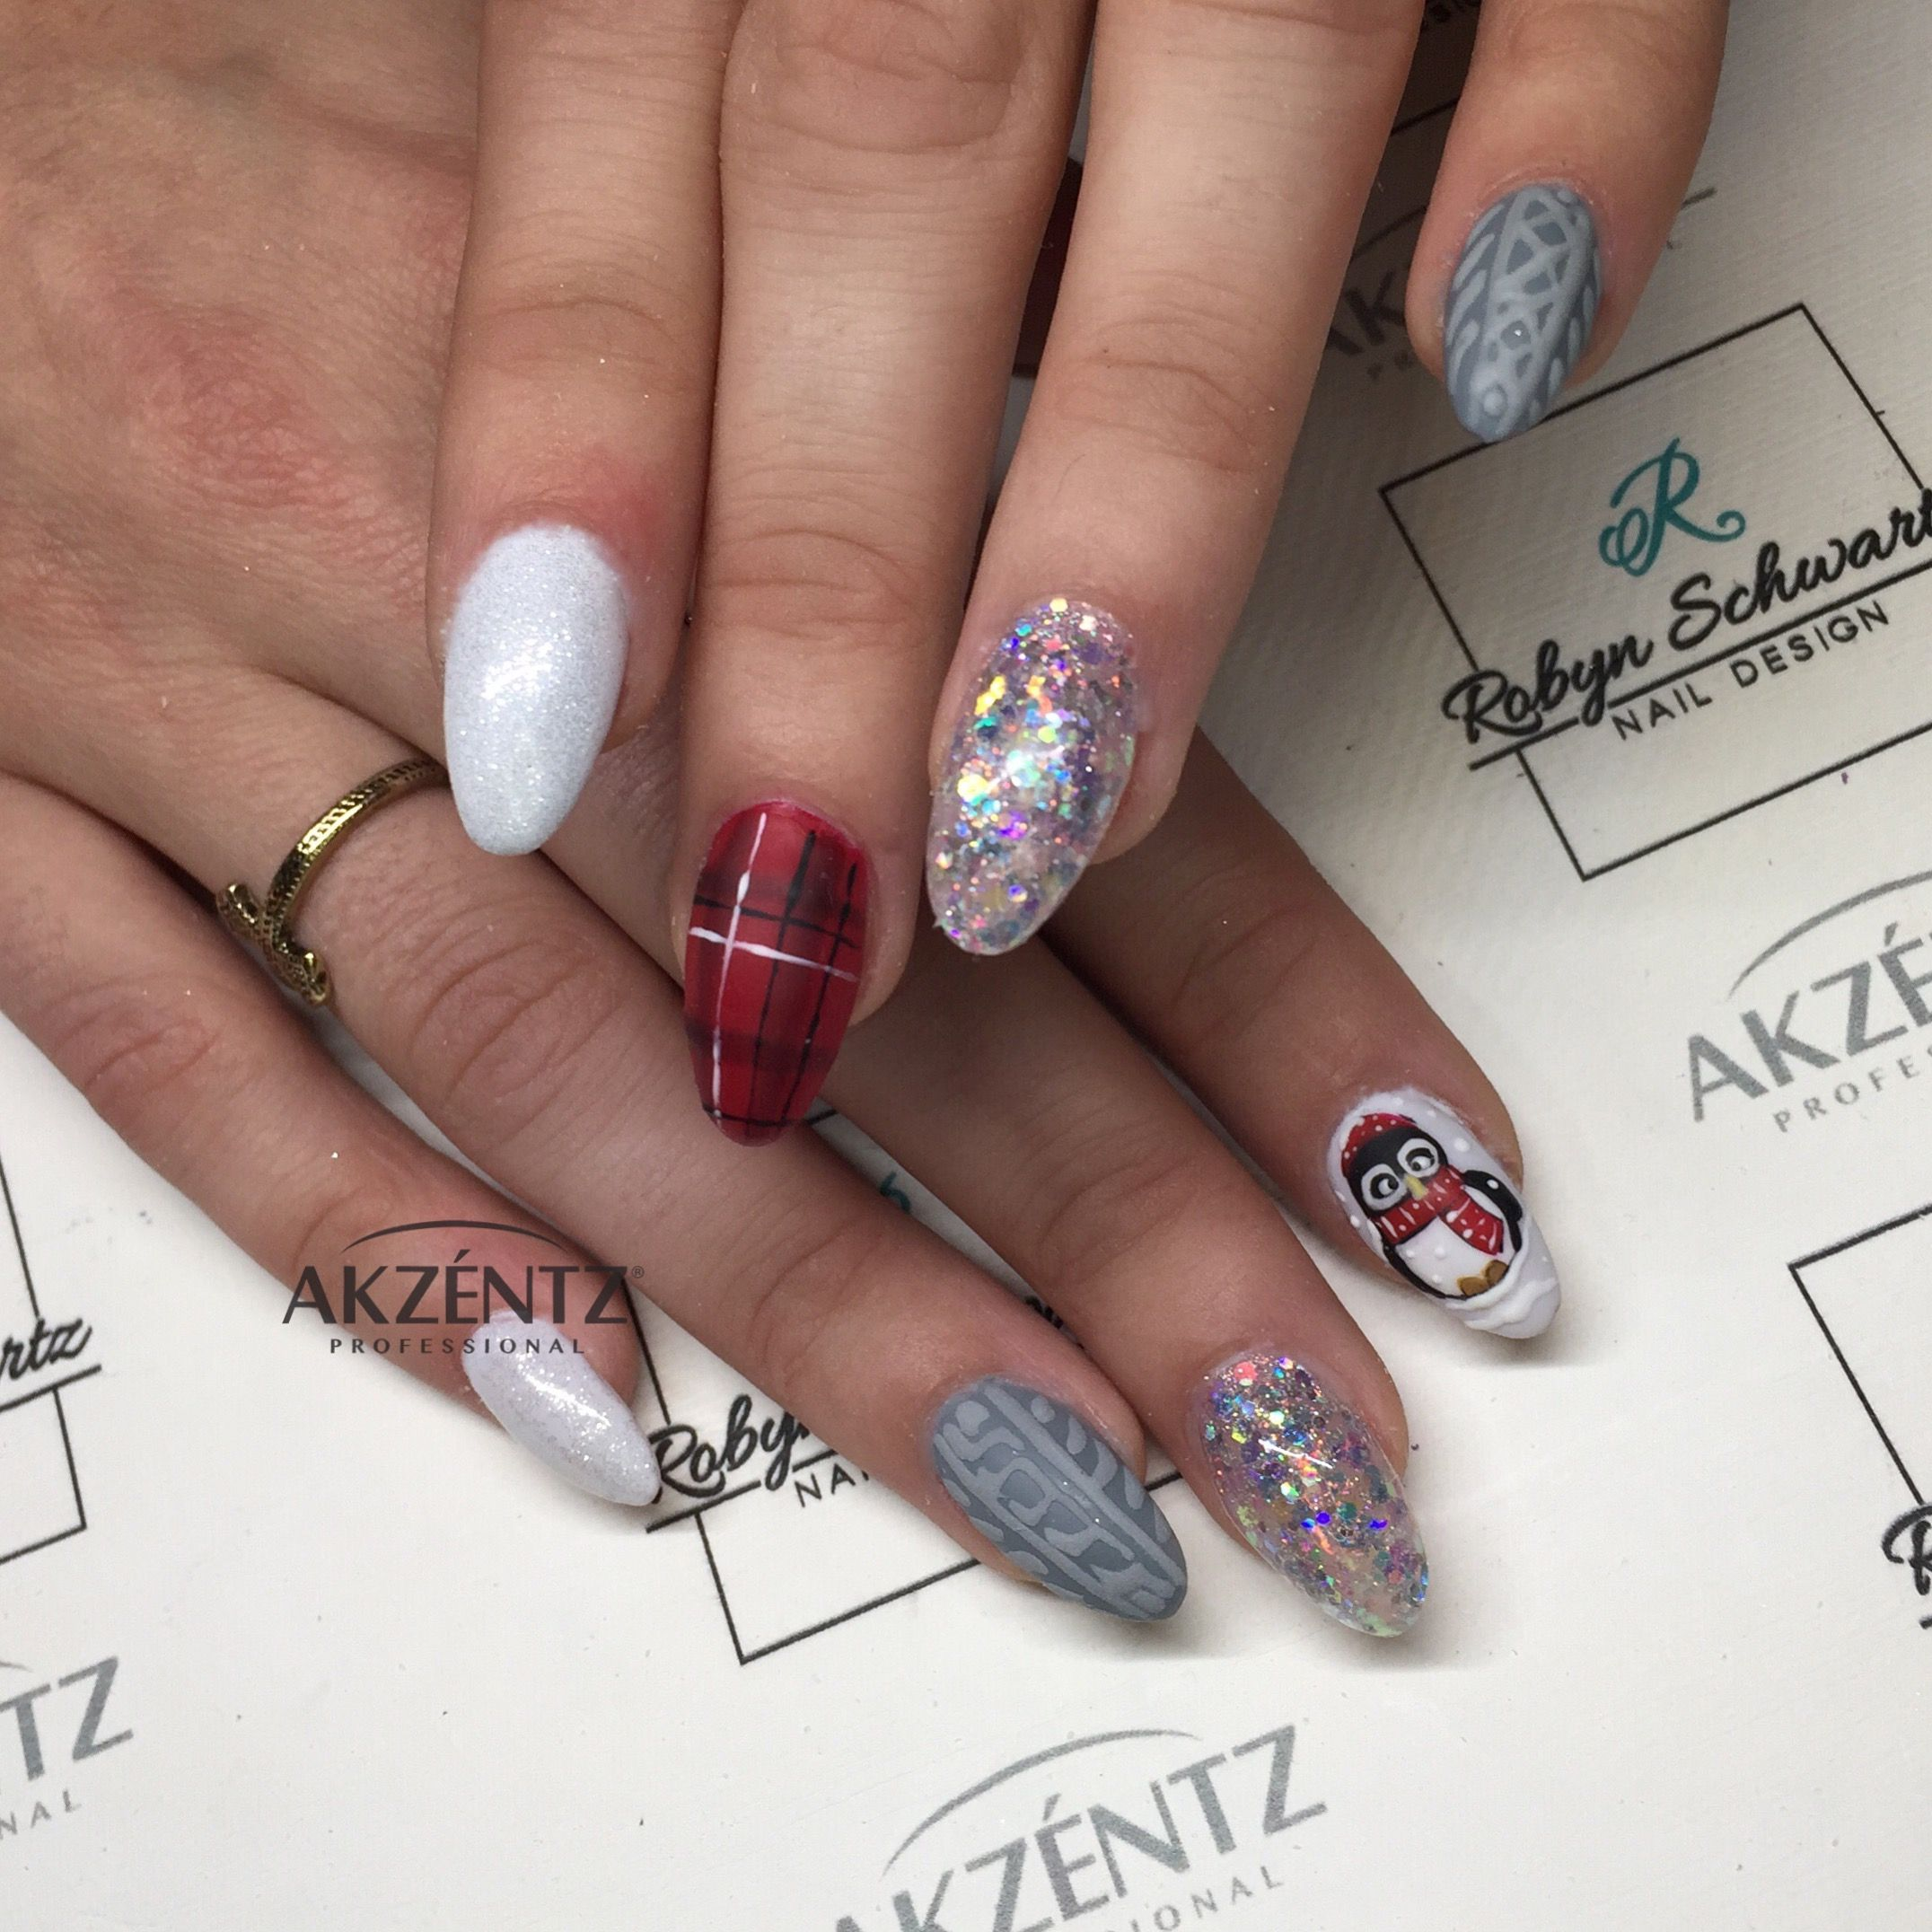 Sweaters, plaid and penguins Oval gel nails | Winter and fall nails ...